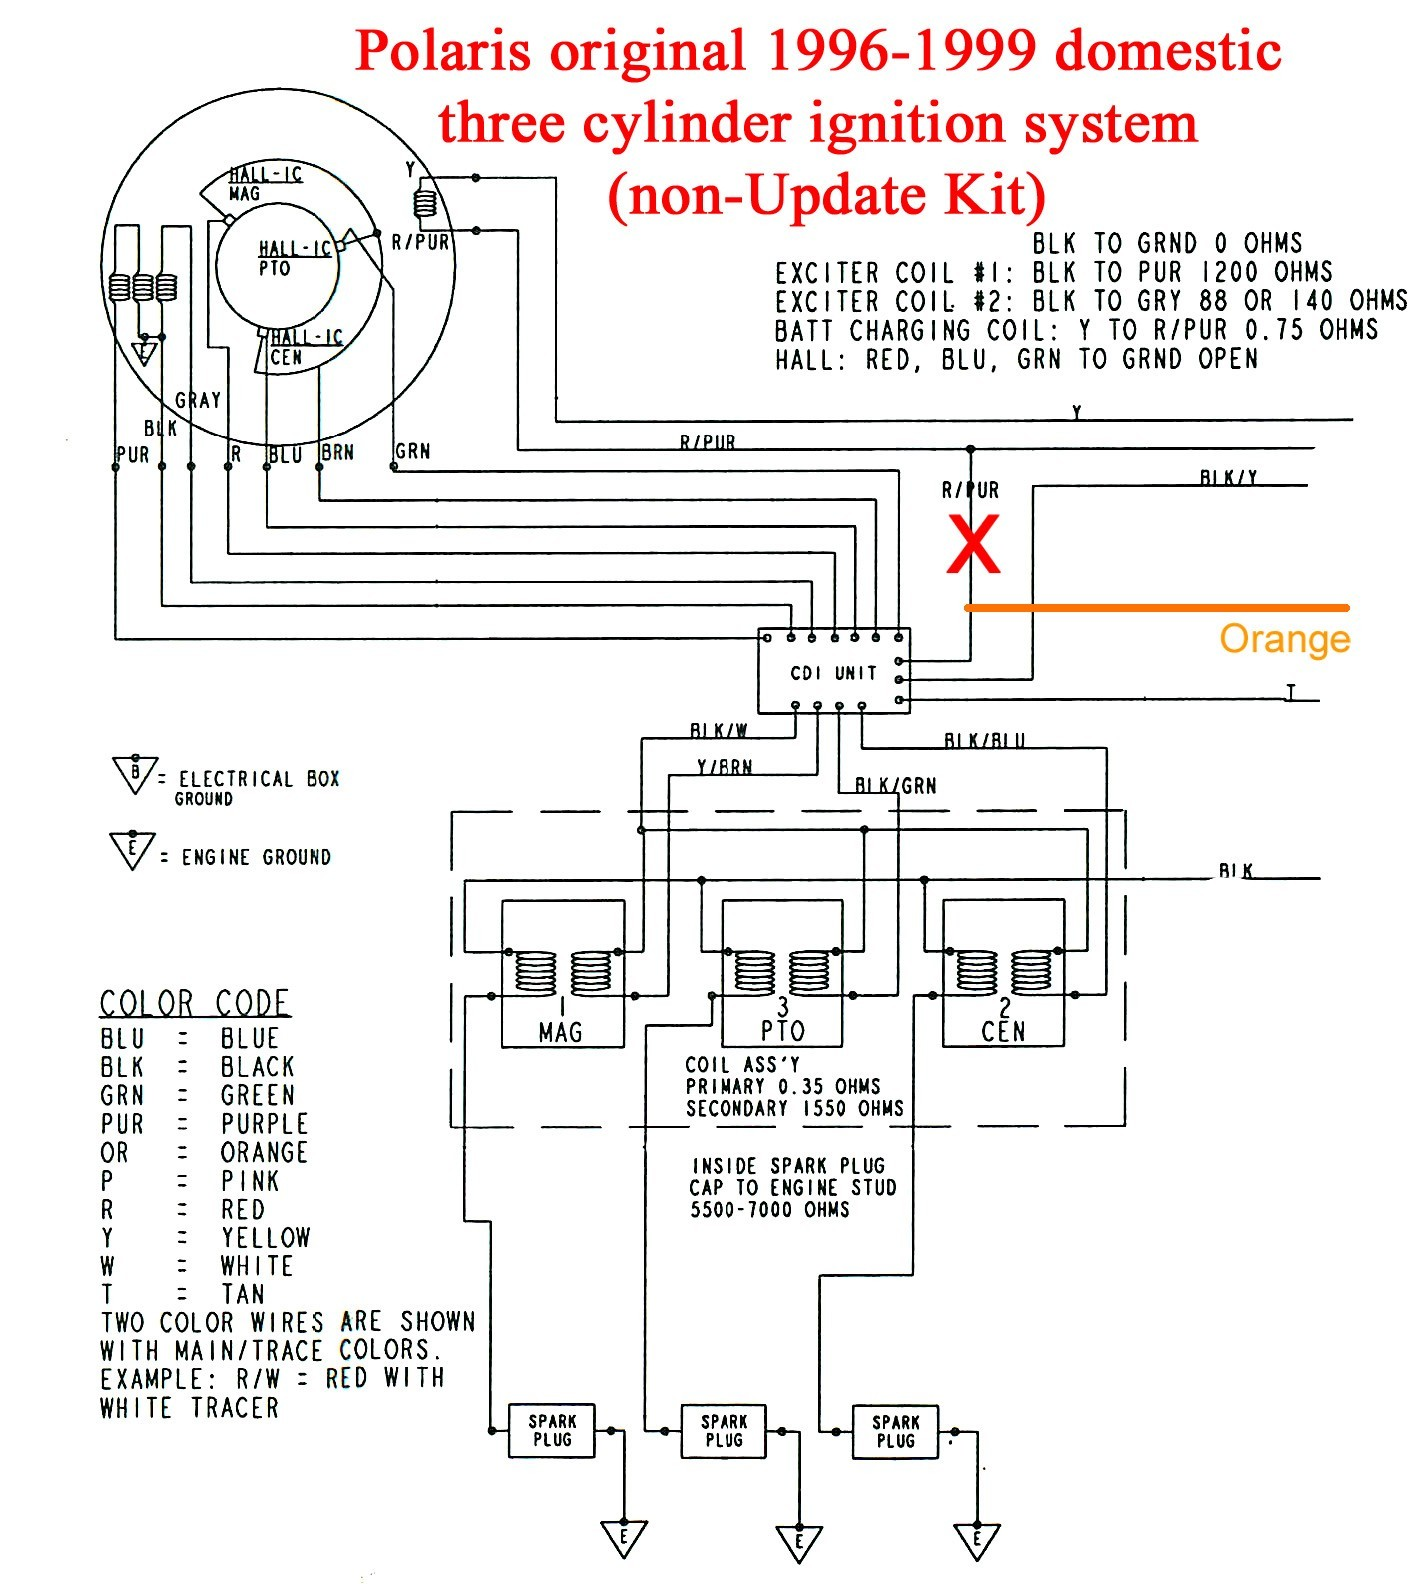 Car Ignition System Diagram Car Ignition System Wiring Diagram My